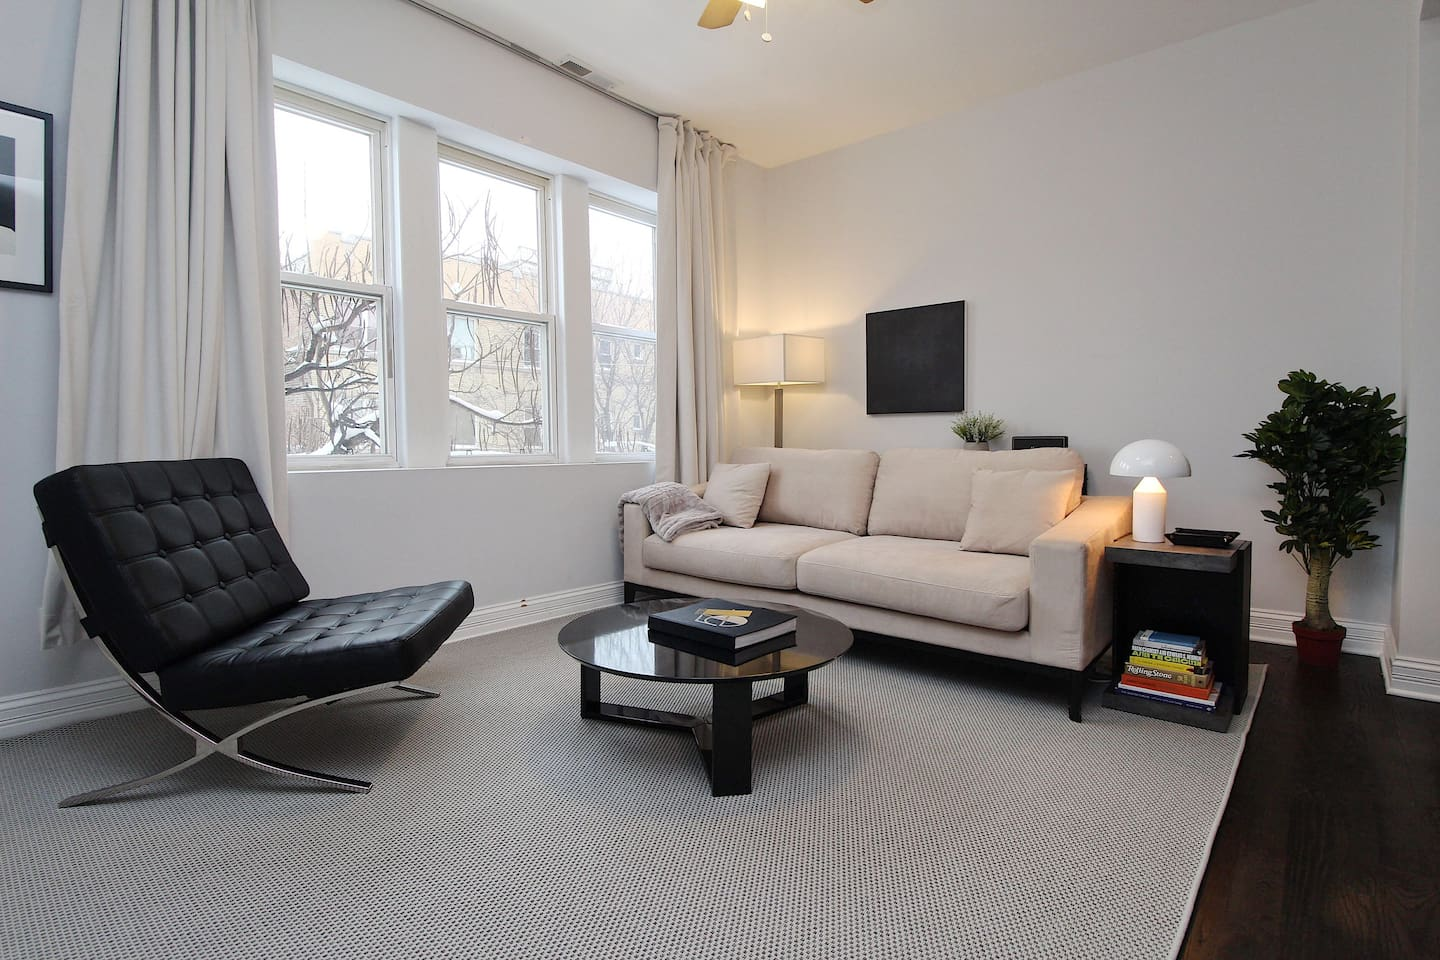 """""""Very modern, clean, and comfortable. Walking distance to Wicker Park bars, shops, and restaurants. And, street free parking!"""""""